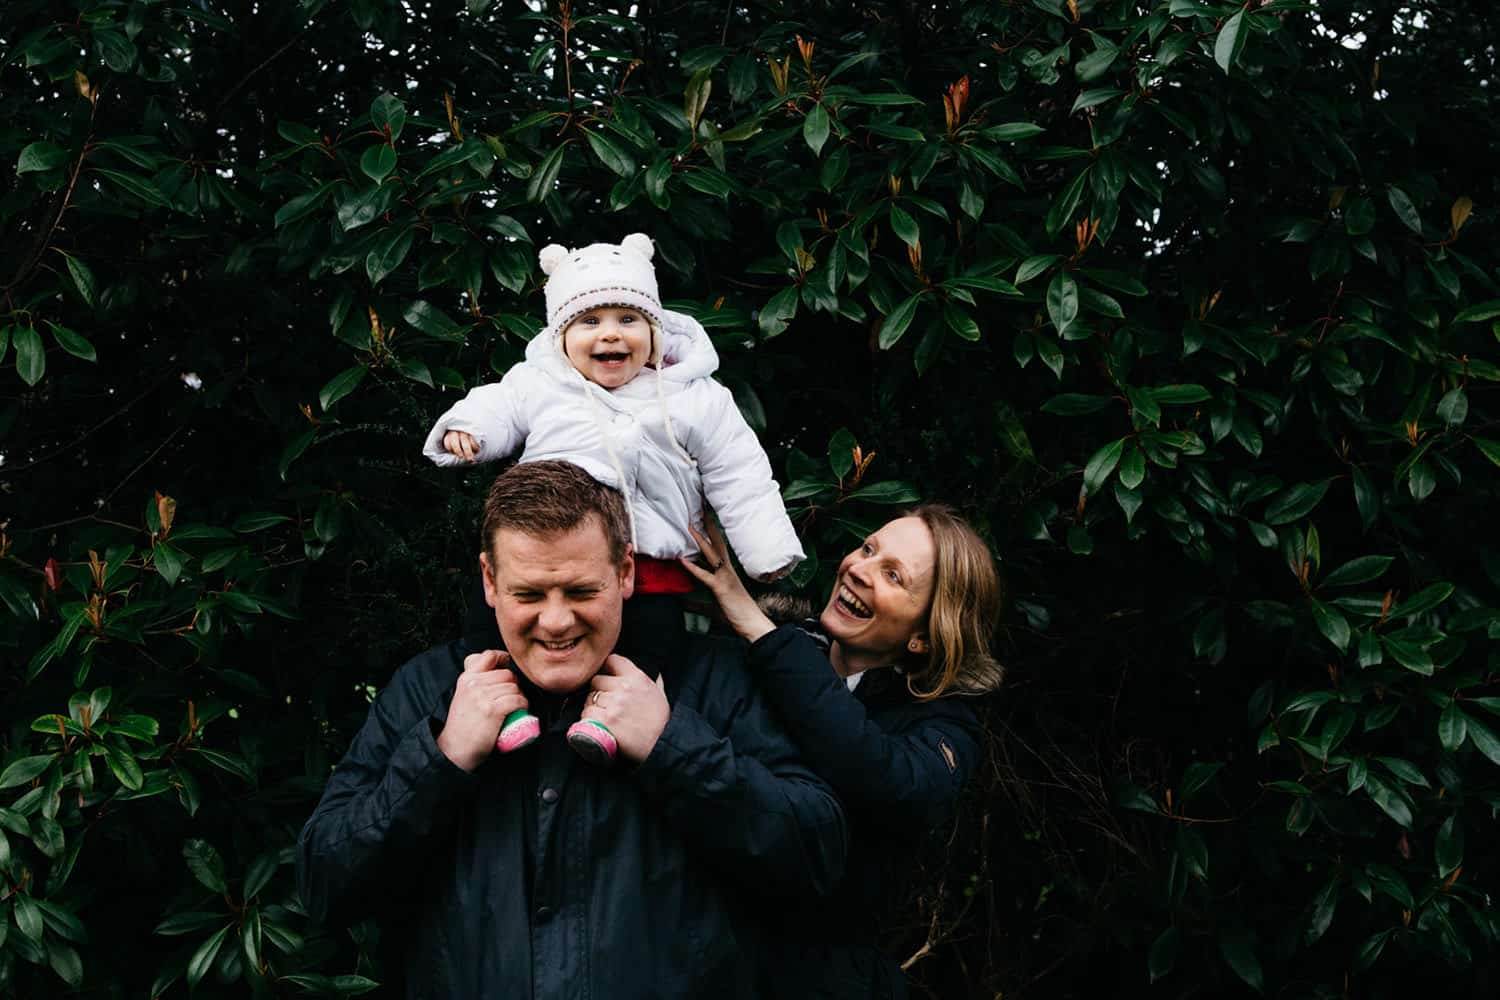 Family photoshoot in Beckenham, Kent